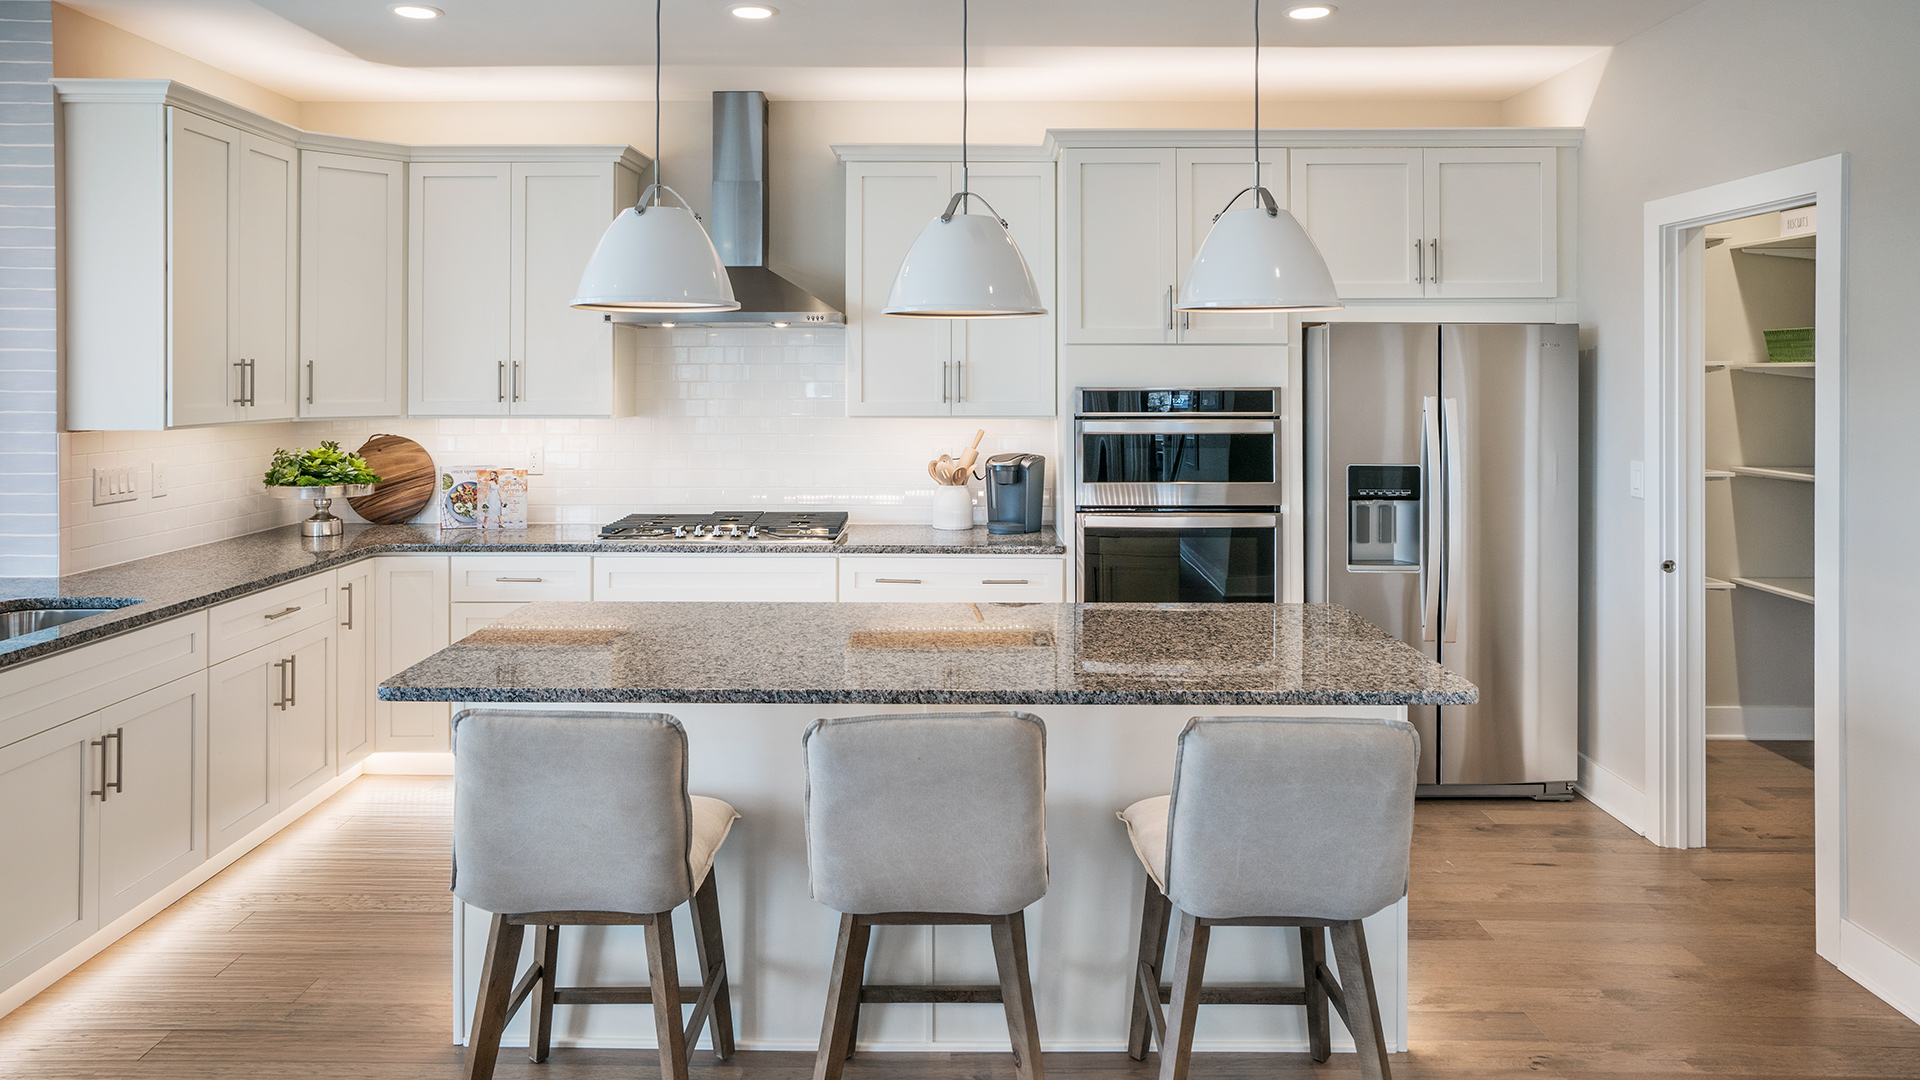 New Luxury Homes For Sale in Quakertown, PA | Twin Lakes